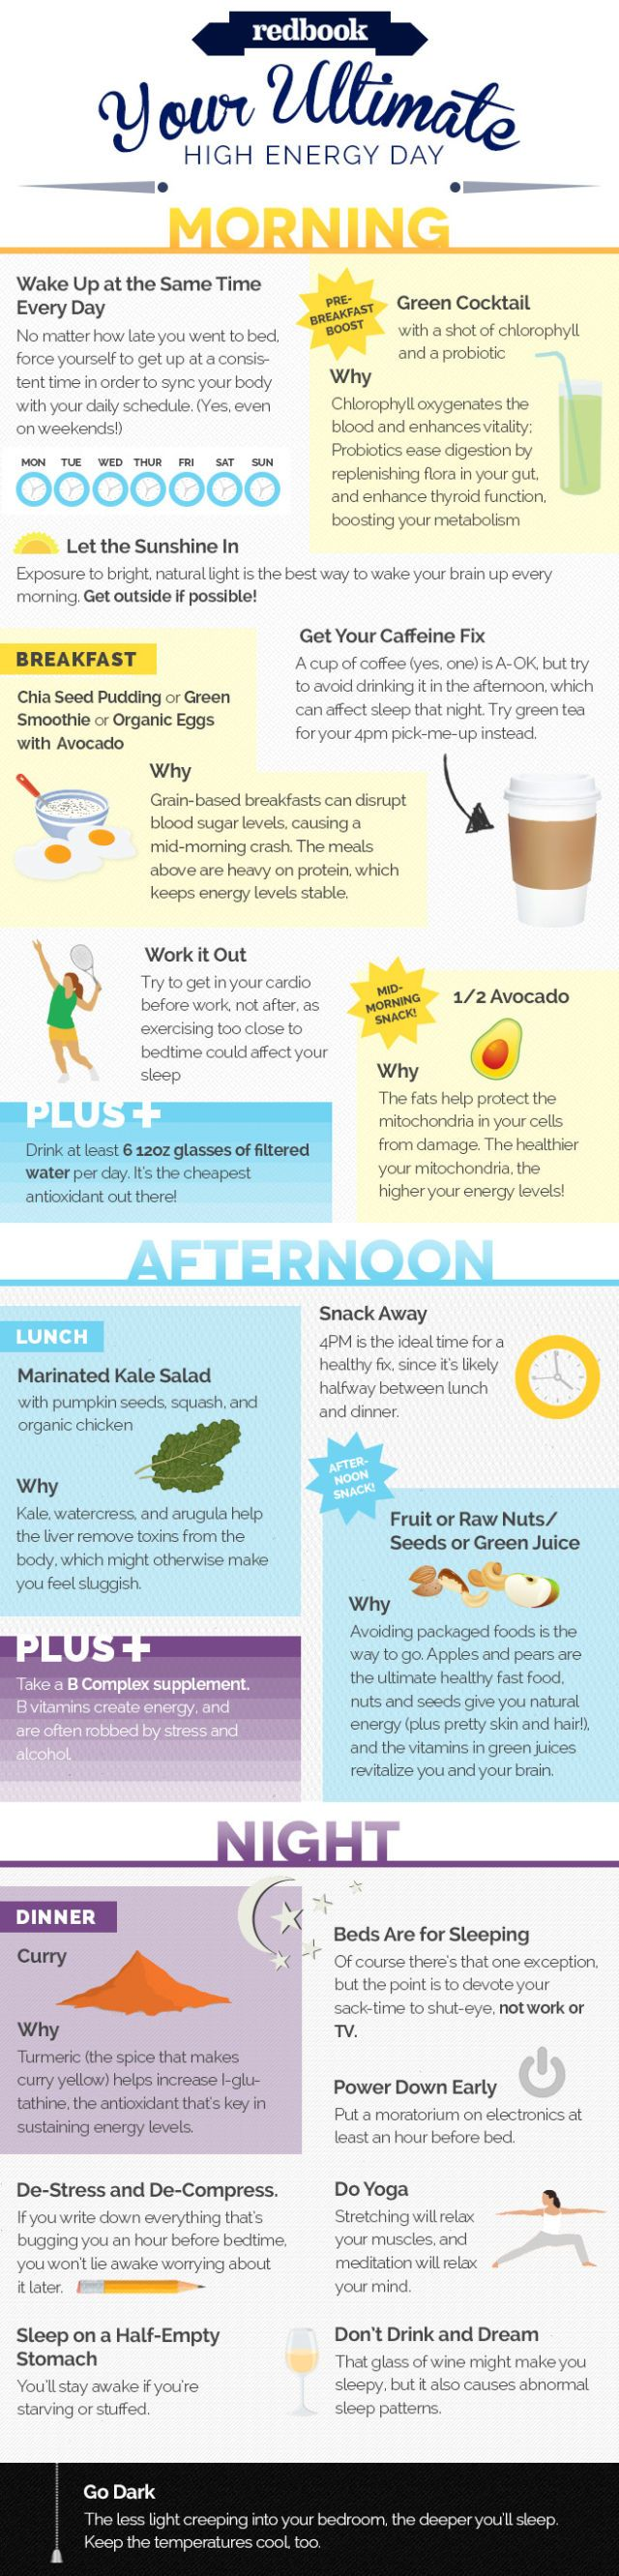 Become a morning person. Healthy living is a great New Year's Resolution 2015! Stay hydrated, make good food choices, and make sleep a priority for health and wellness!